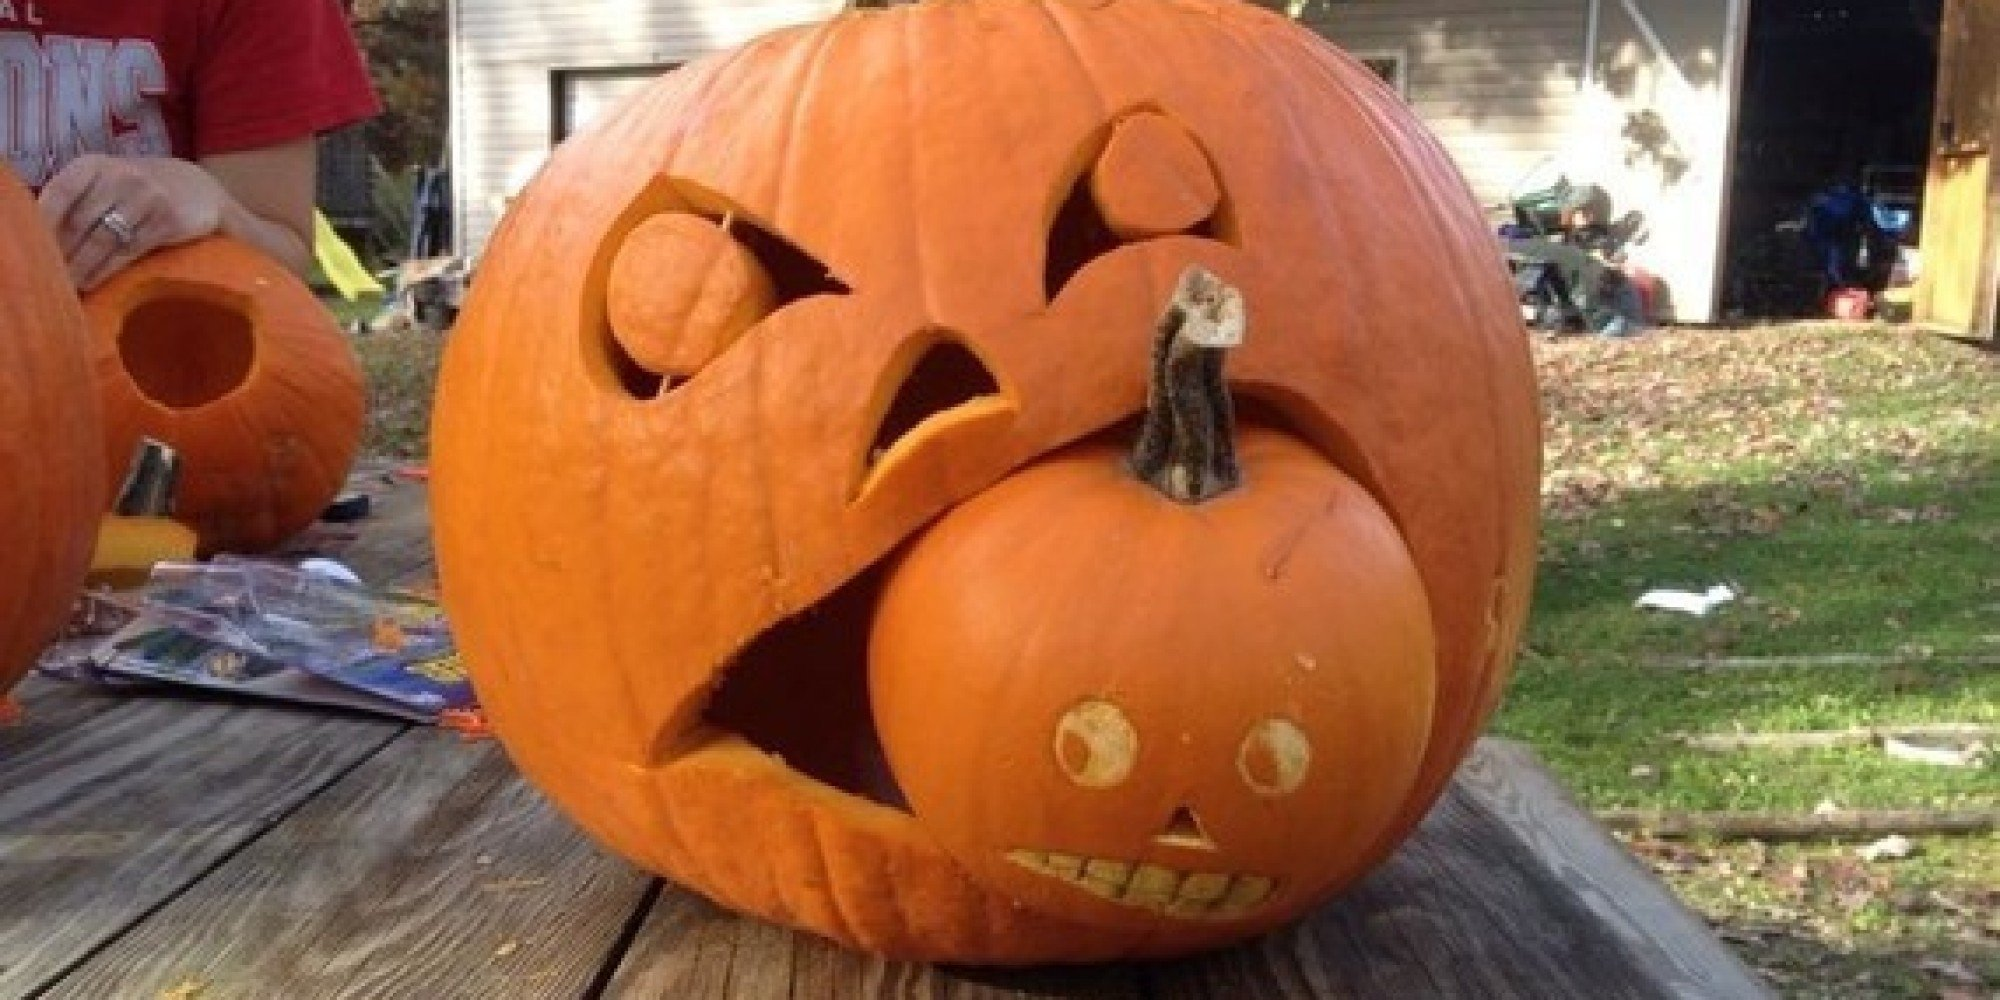 10 Fantastic Jack O Lantern Ideas Kids 34 epic jack o lantern ideas to try out this halloween huffpost 1 2020